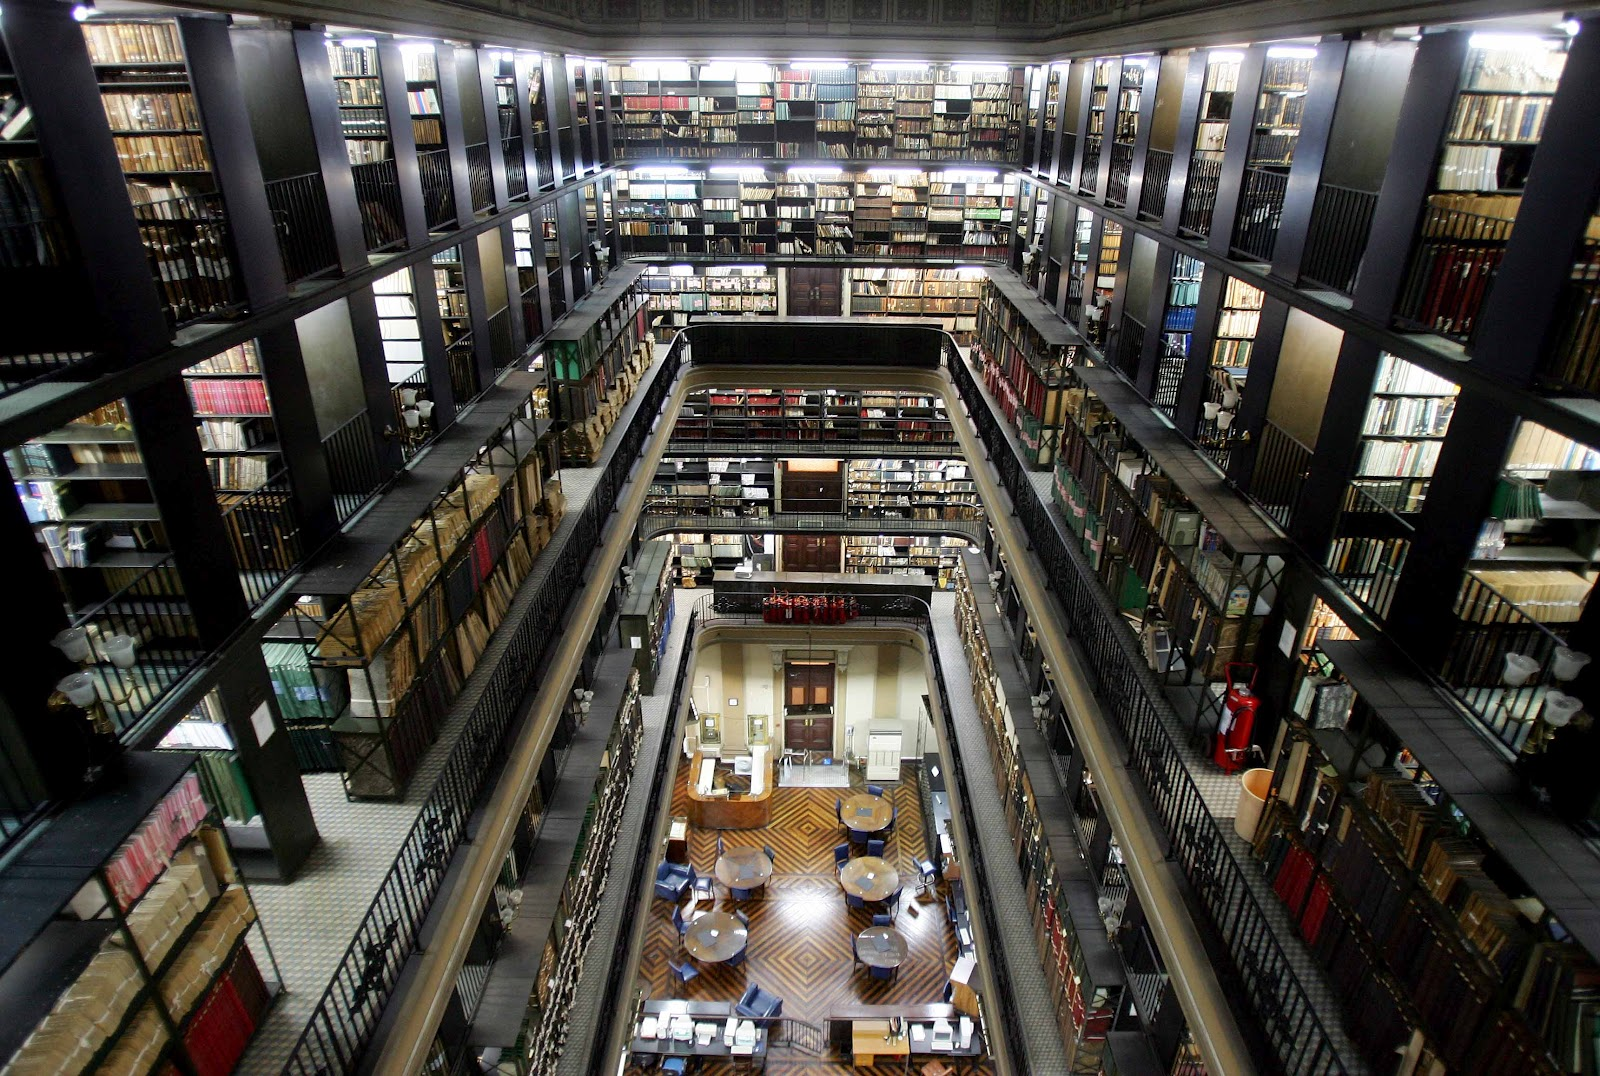 The National Library of Brazil